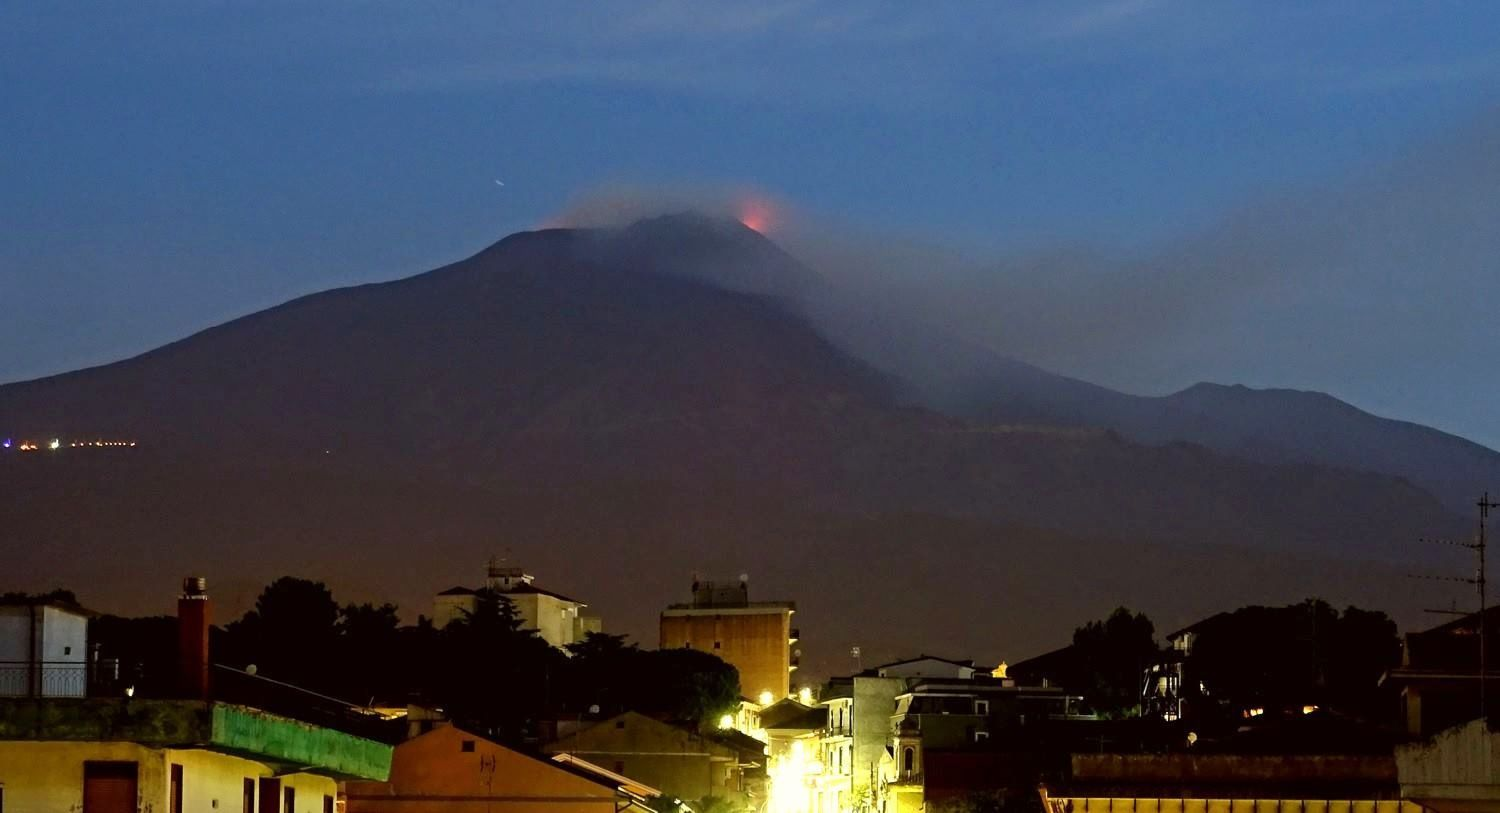 Etna - situation le 27.08.2018 à l'aube - photo Bori Behncke